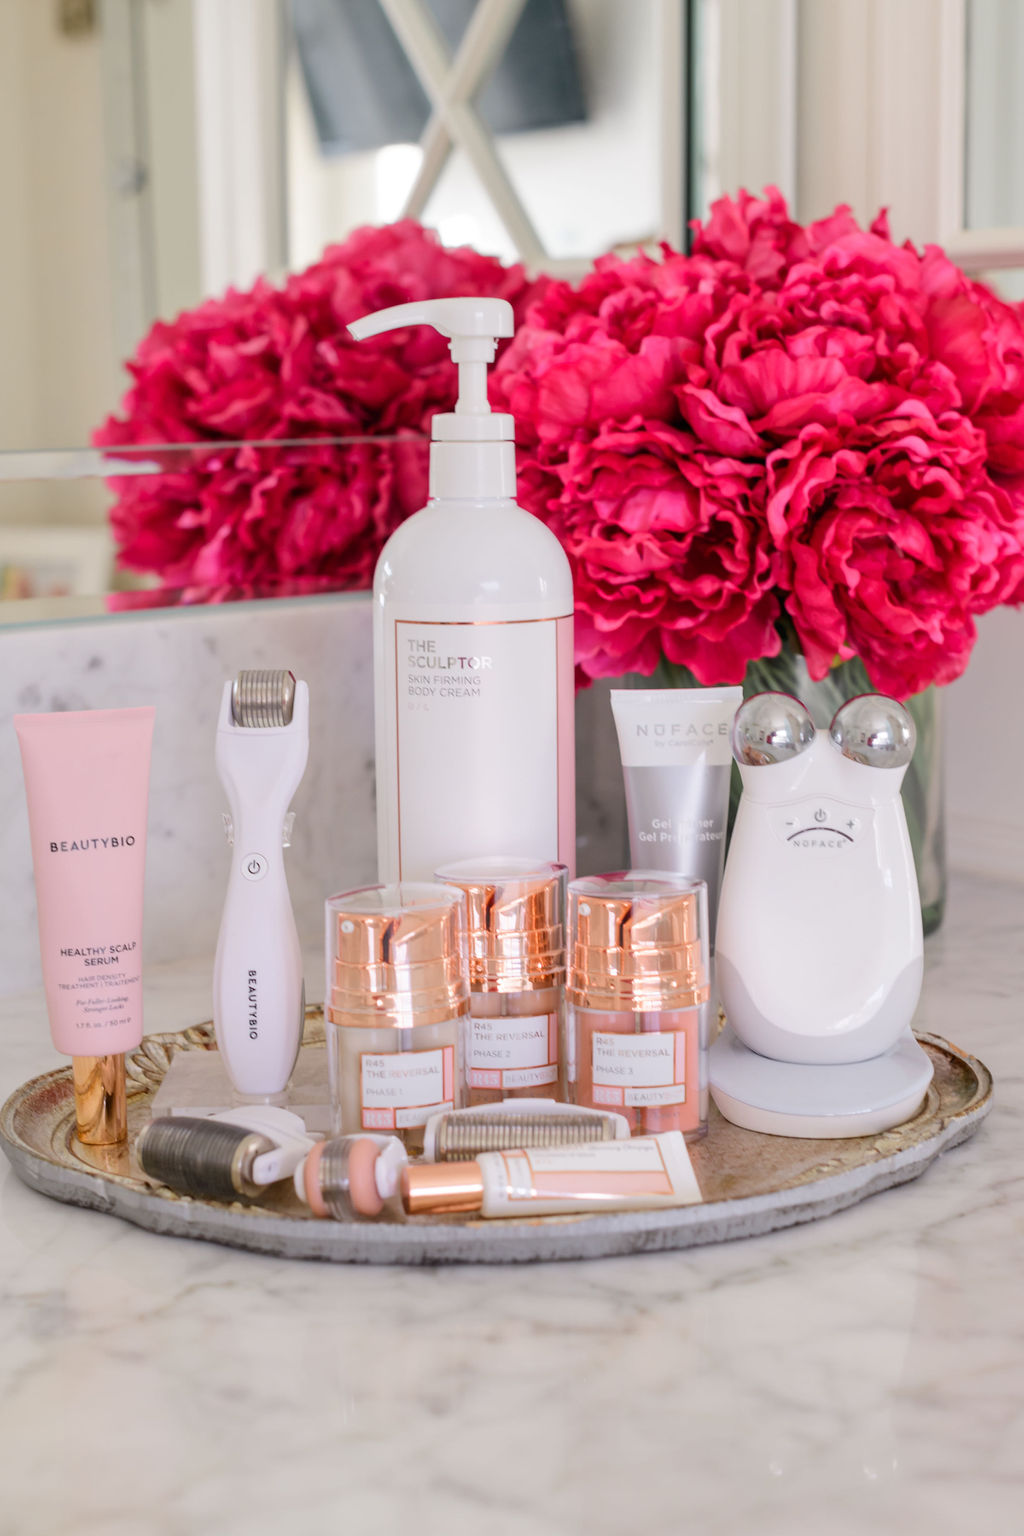 Favorite Beauty Tools from Nordstrom